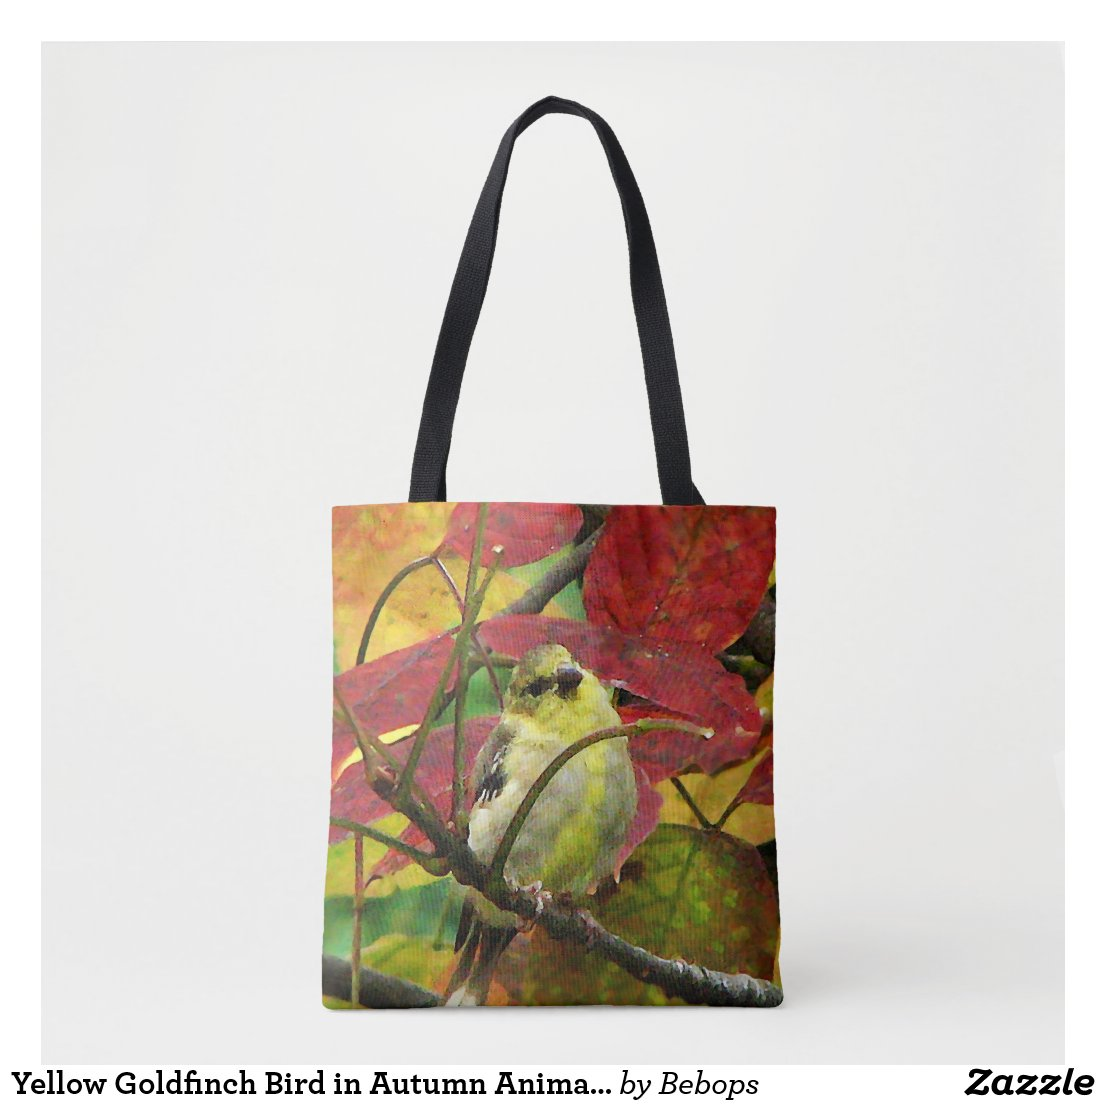 Yellow Goldfinch Bird in Autumn Animal Tote Bag